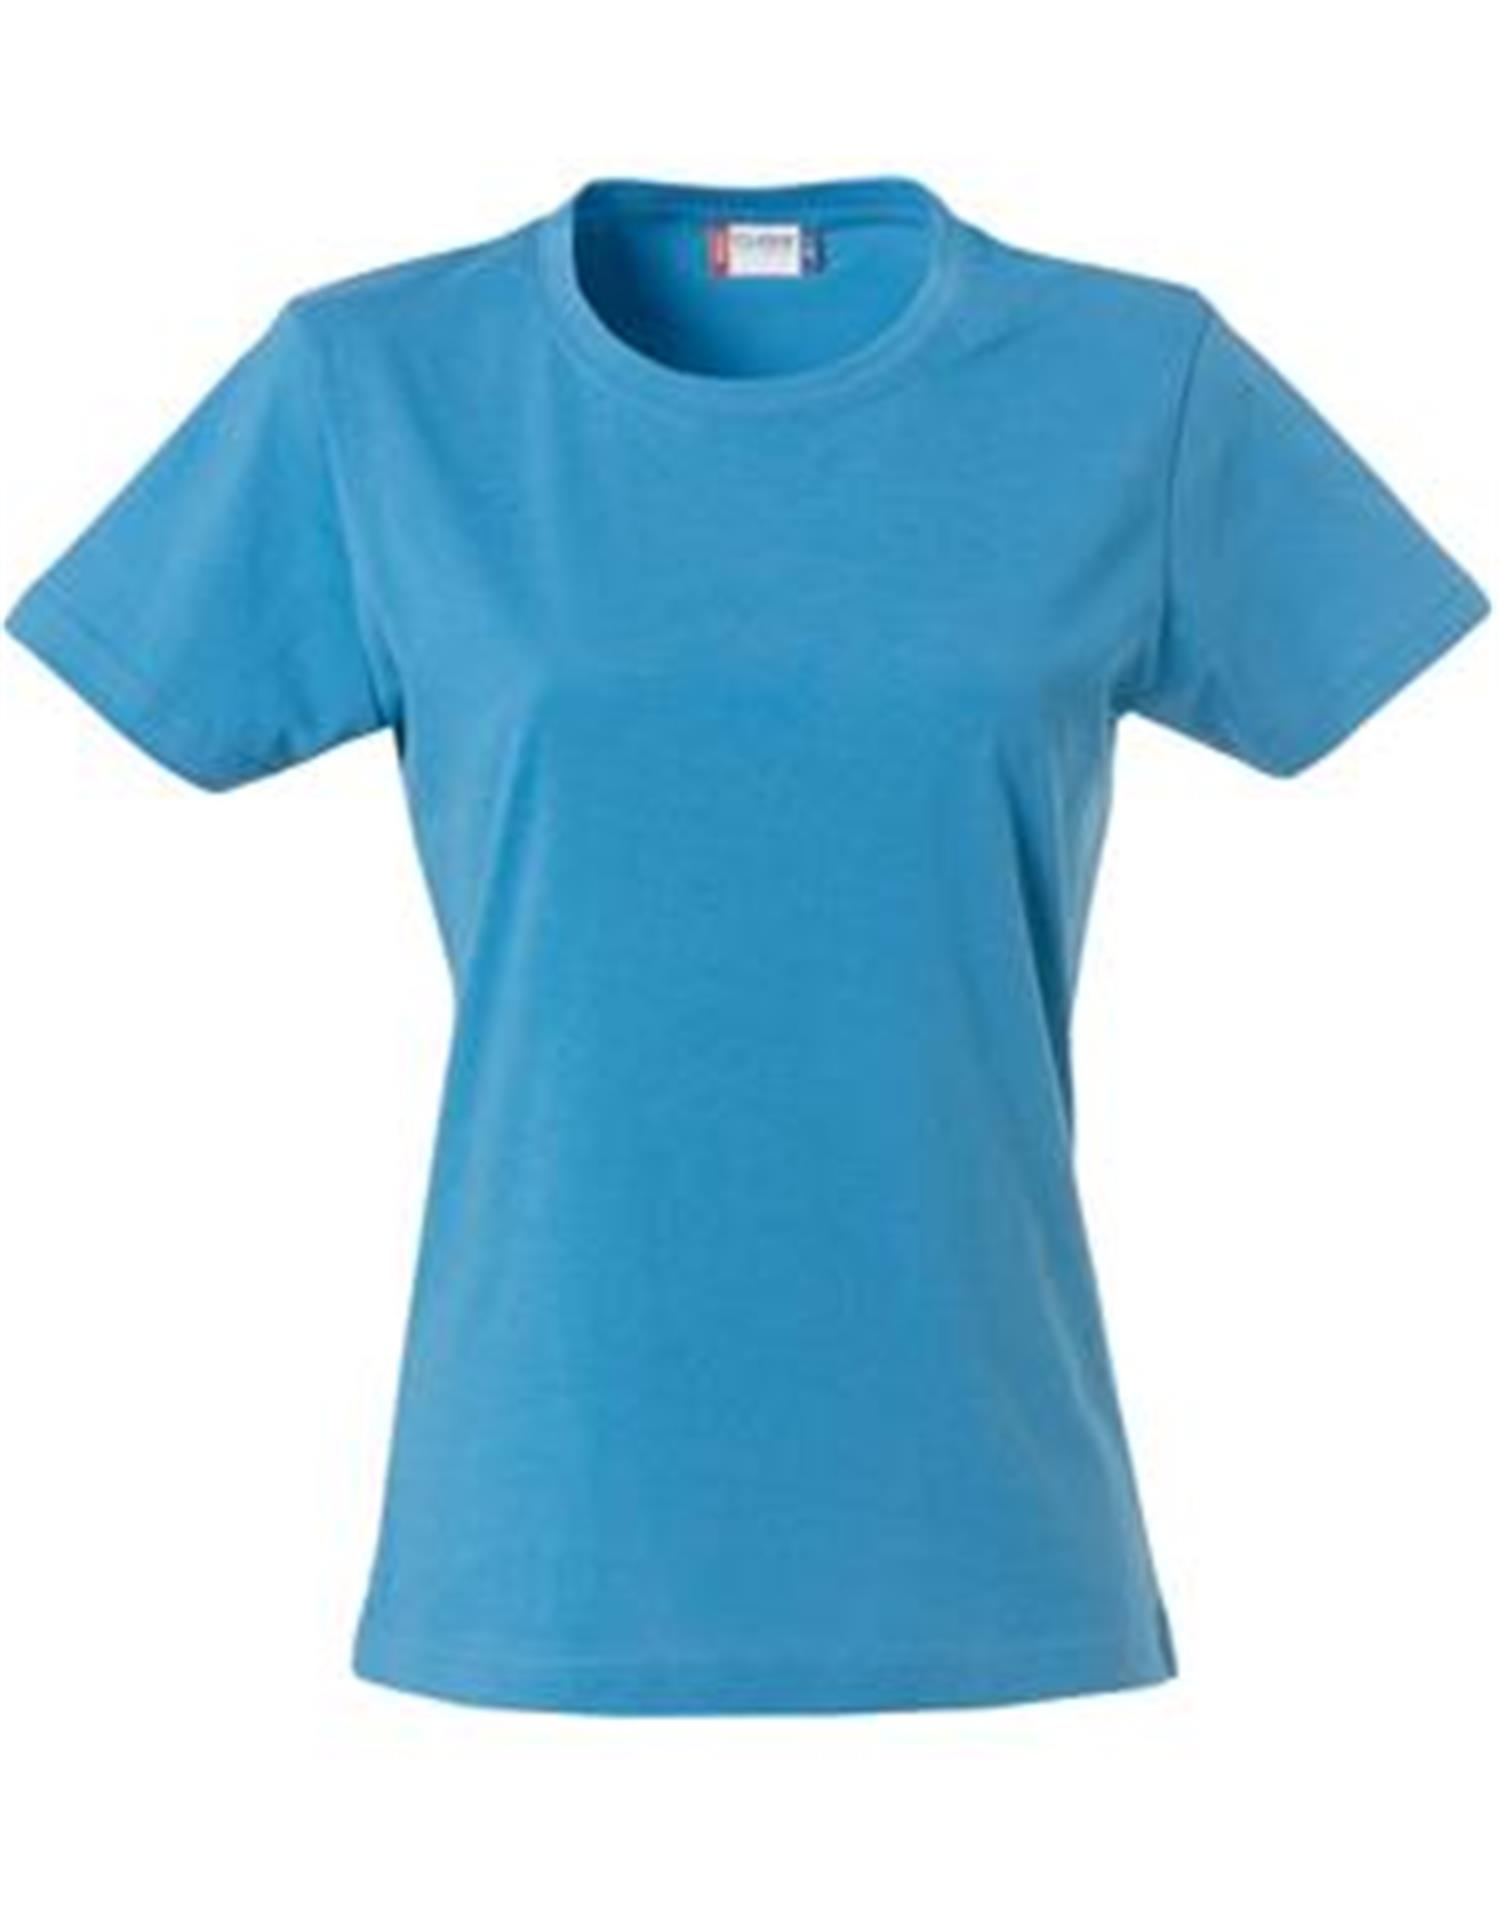 NewWave T-shirt donna  basic-t clique 145 gm (XS - TURCHESE)